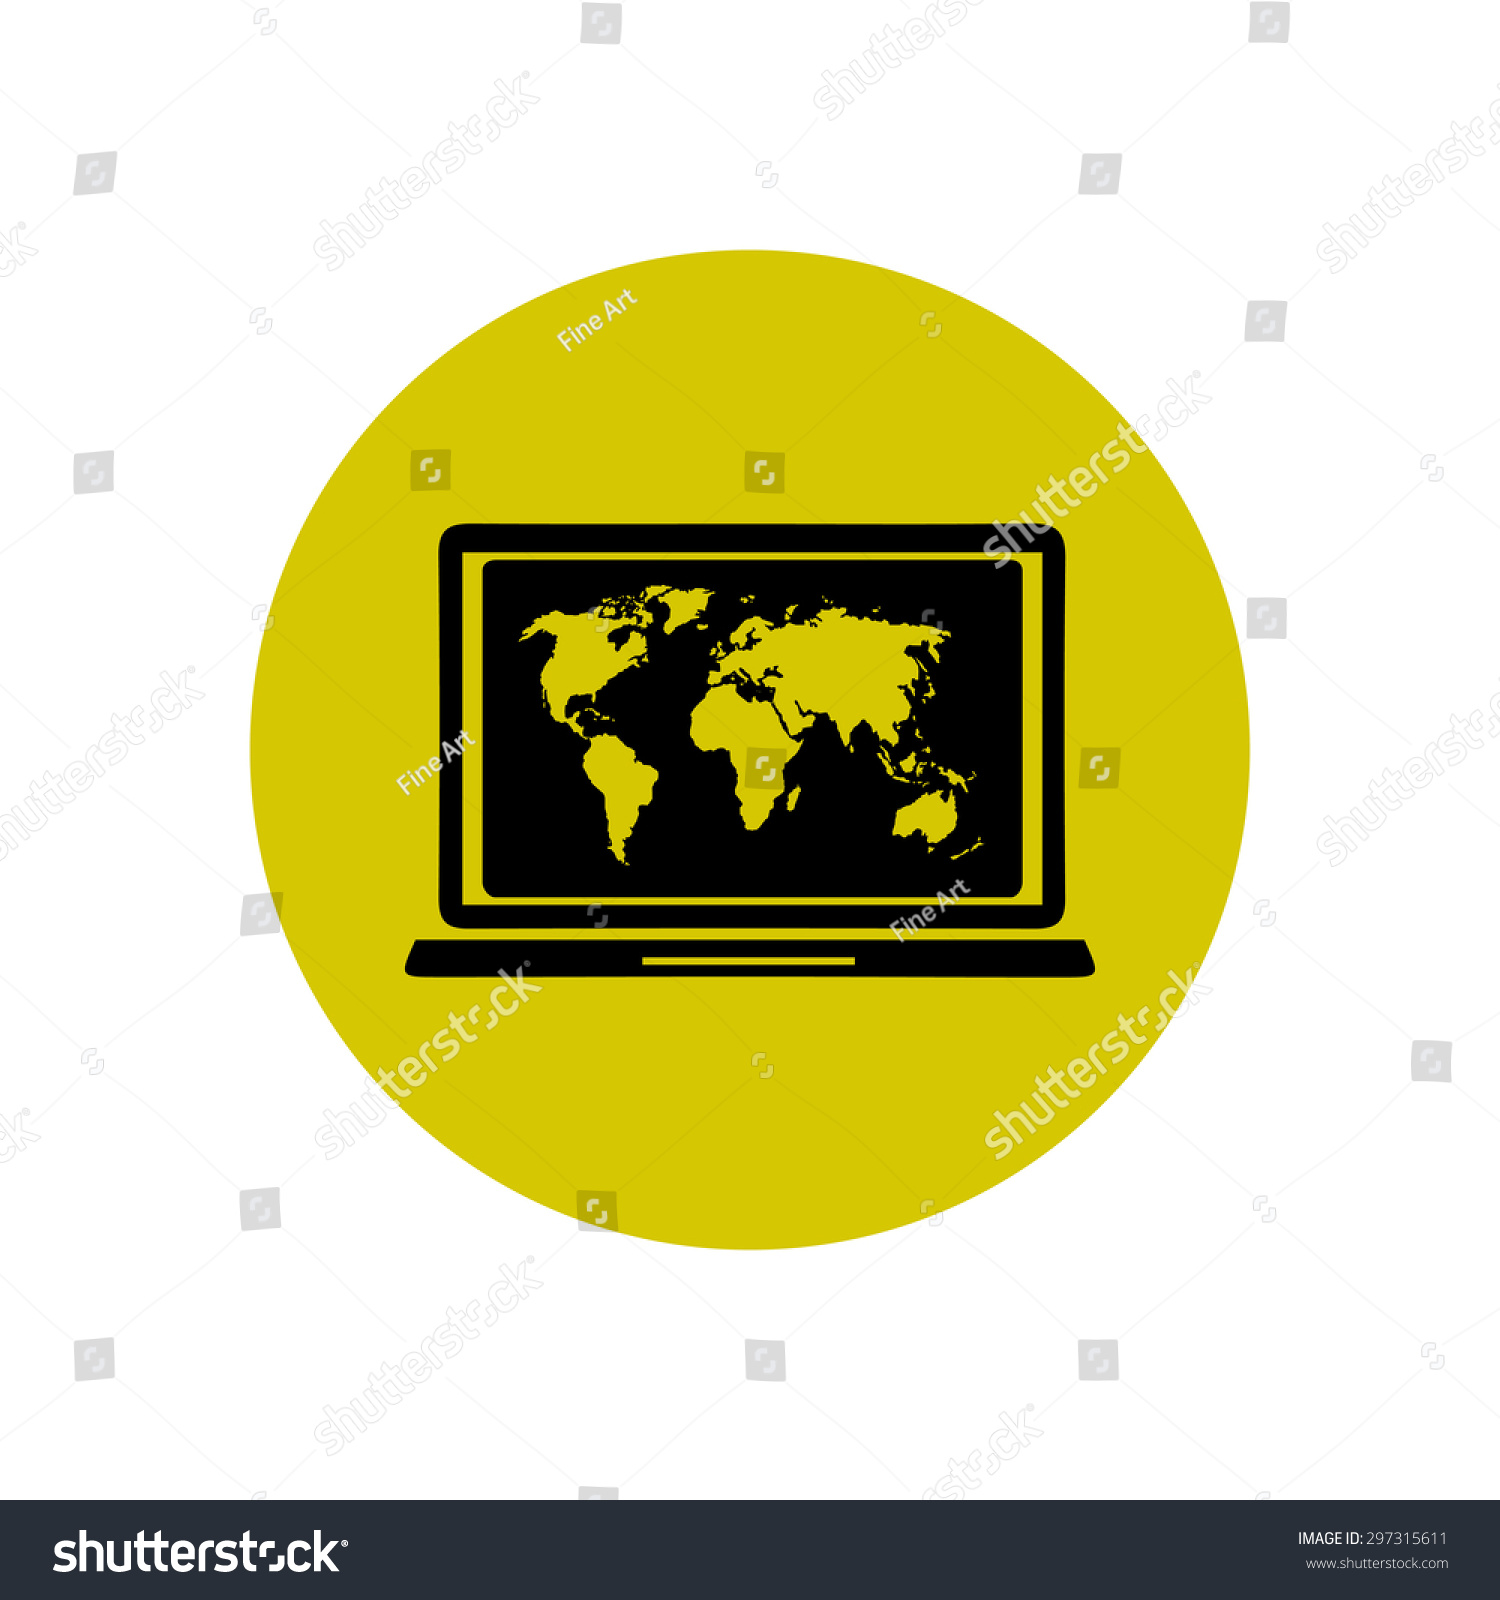 Laptop world map illustration world map stock vector 297315611 laptop and world map illustration world map geography symbol flat design style vector gumiabroncs Images